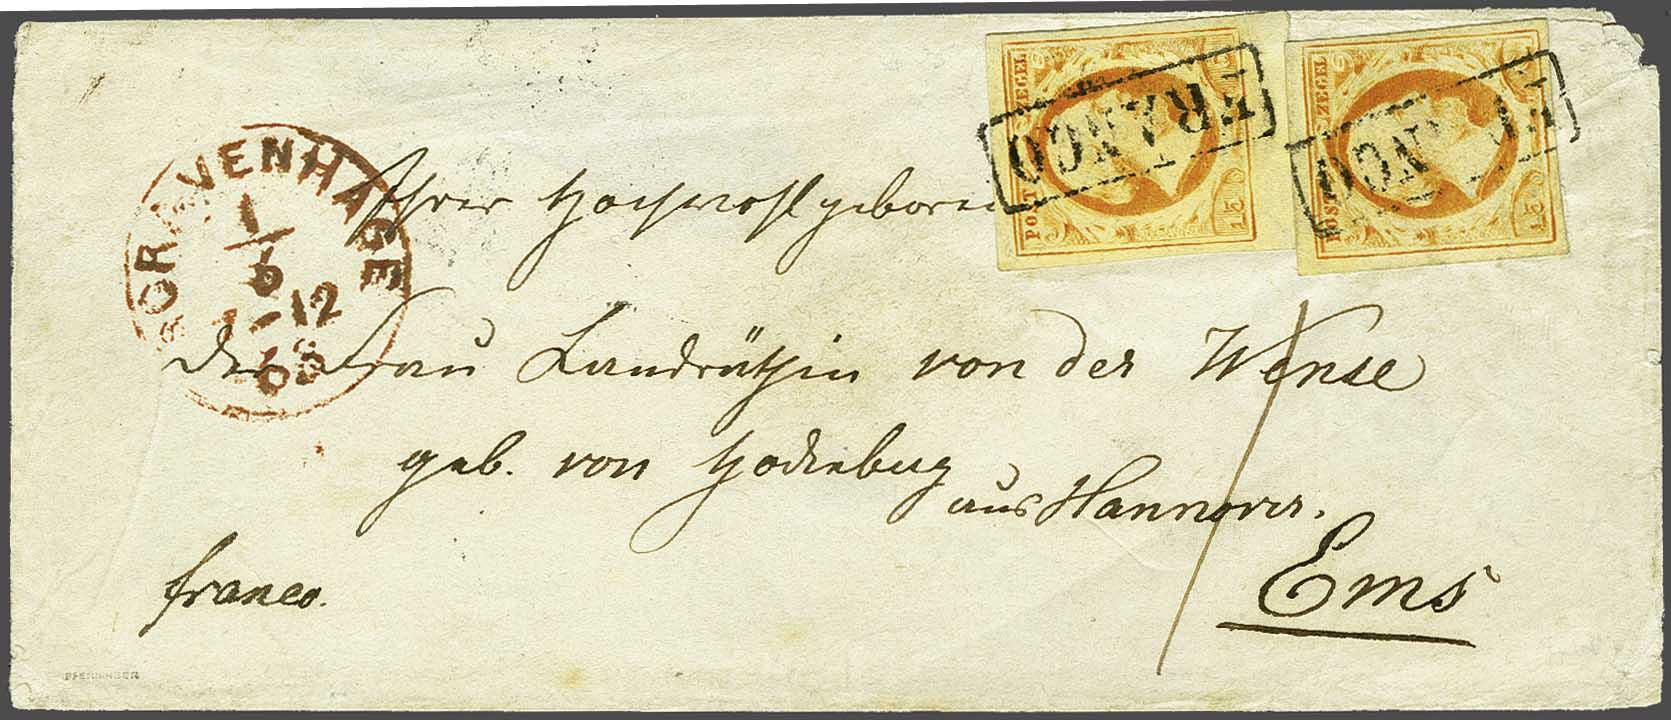 Lot 1720 - Netherlands and former colonies NL 1852 King William III -  Corinphila Veilingen Auction 245-246 Day 3 - Netherlands and former colonies - Single lots, Collections and lots, Boxes and literature